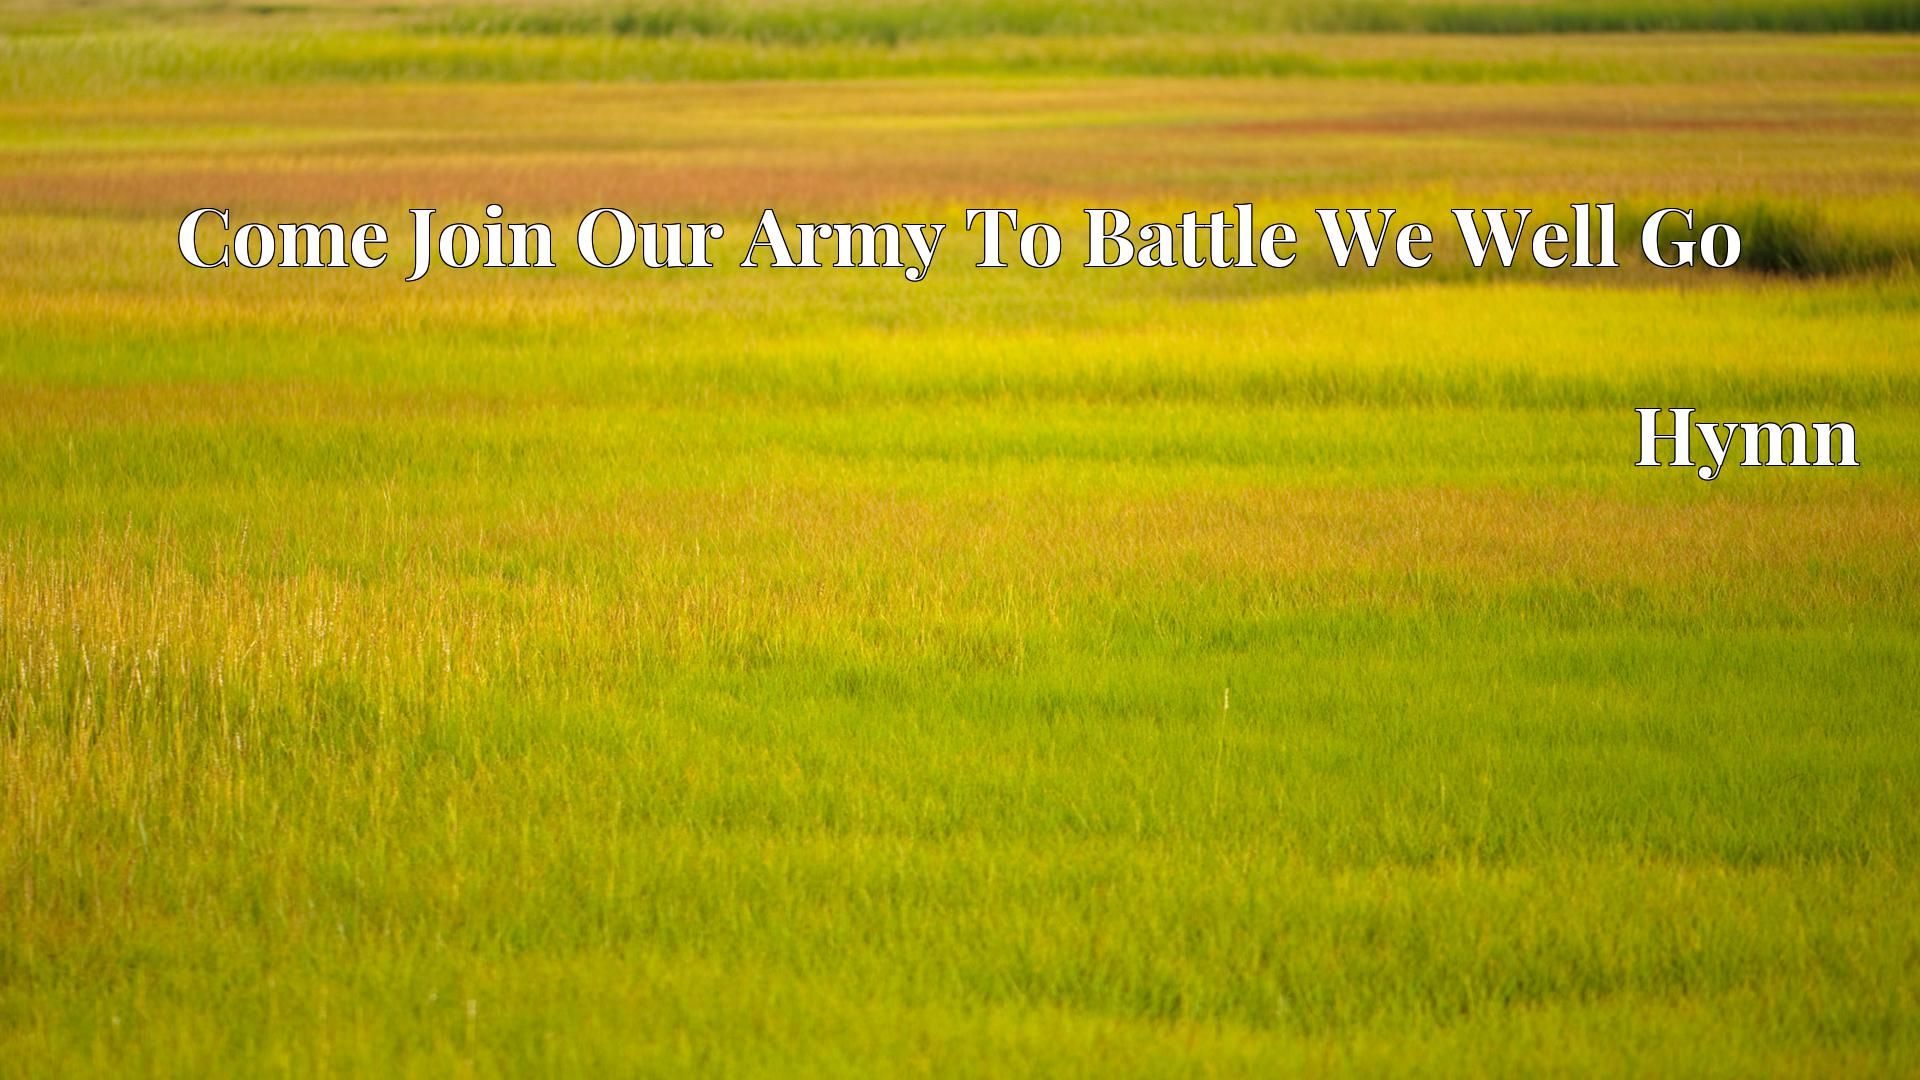 Come Join Our Army To Battle We Well Go - Hymn